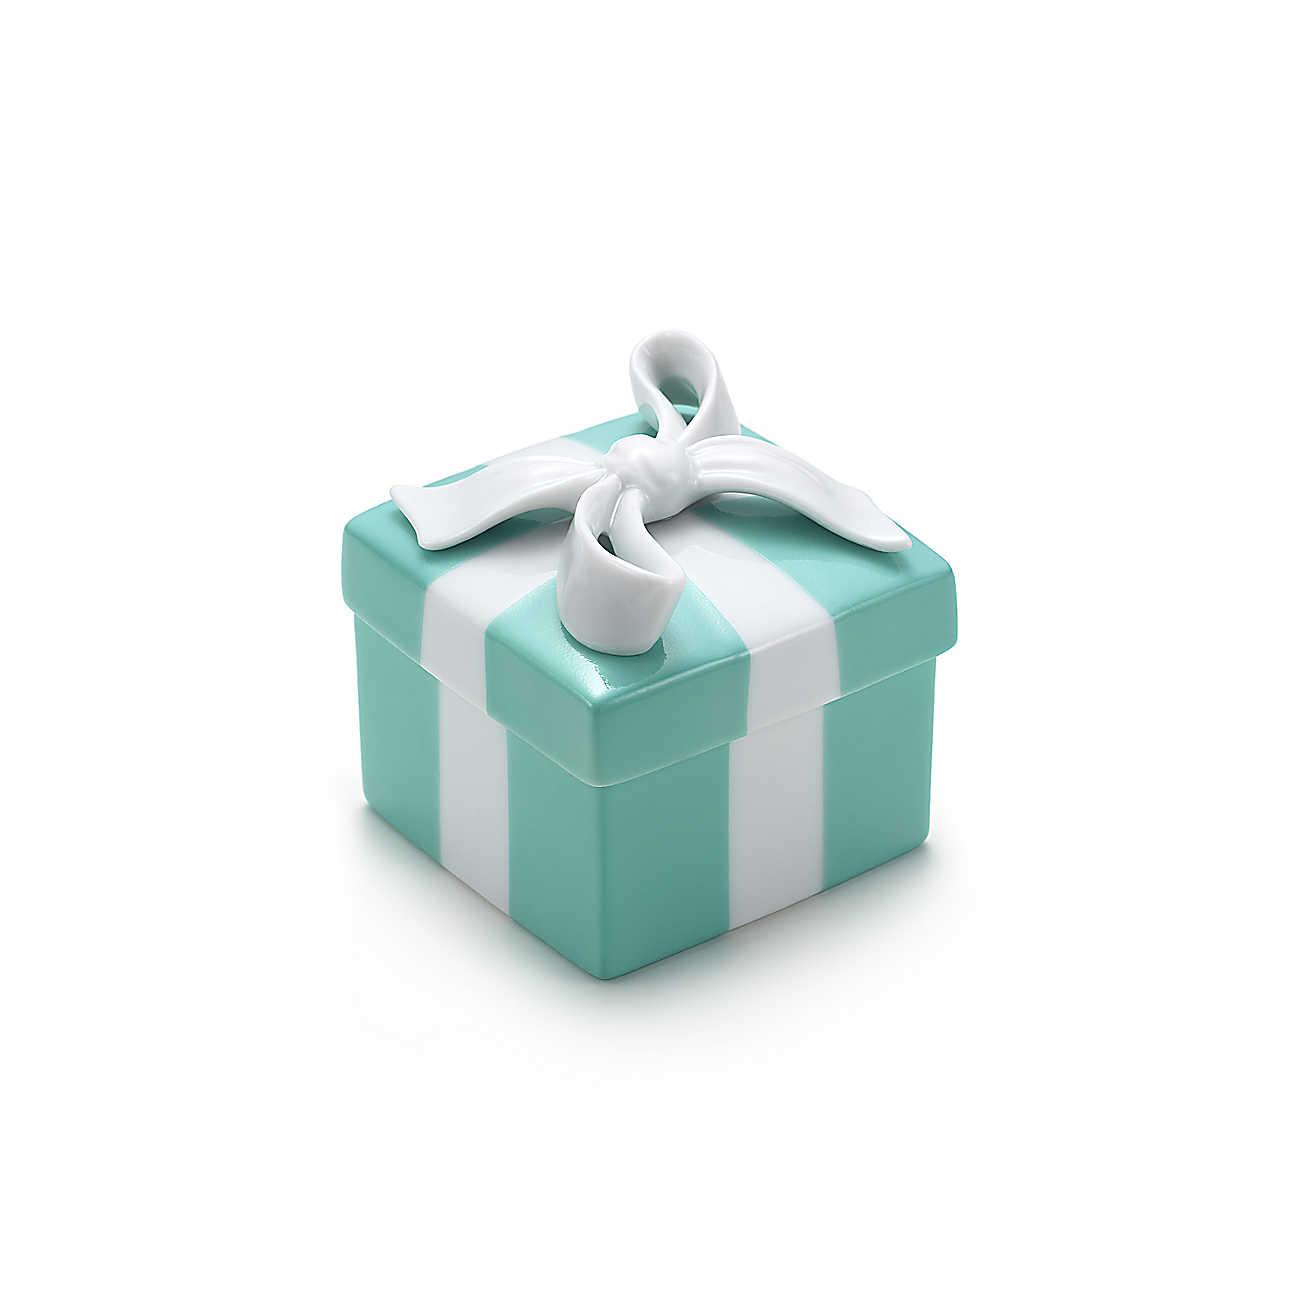 Free Tiffany\'s Box Cliparts, Download Free Clip Art, Free.